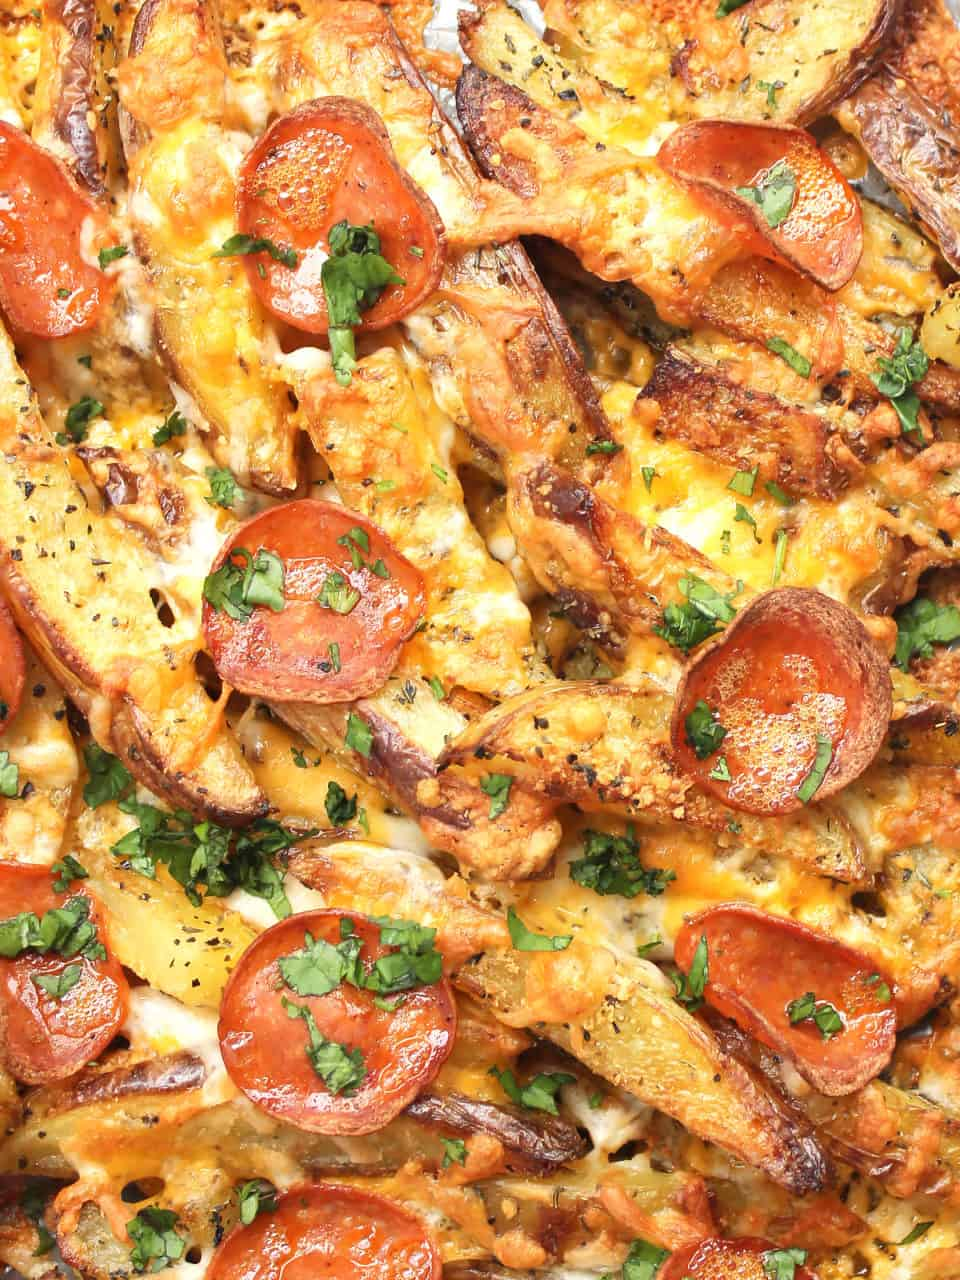 Close up of the baked pizza fries ready to serve.